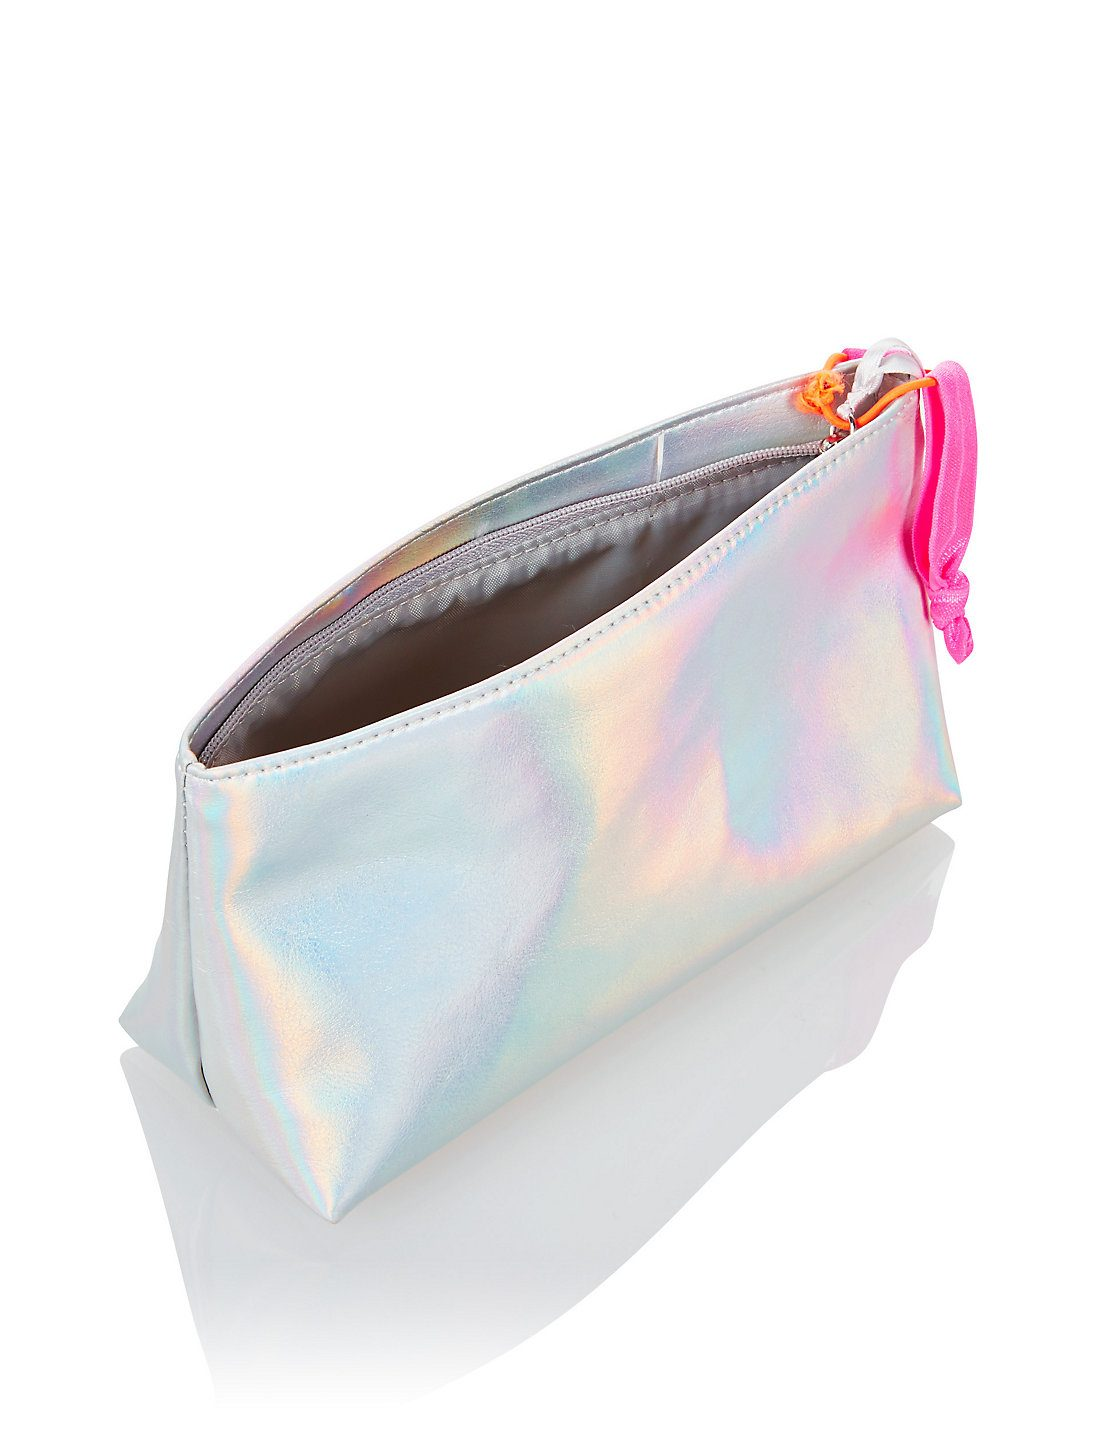 Marks & Spencer Shiny Make Up Bag